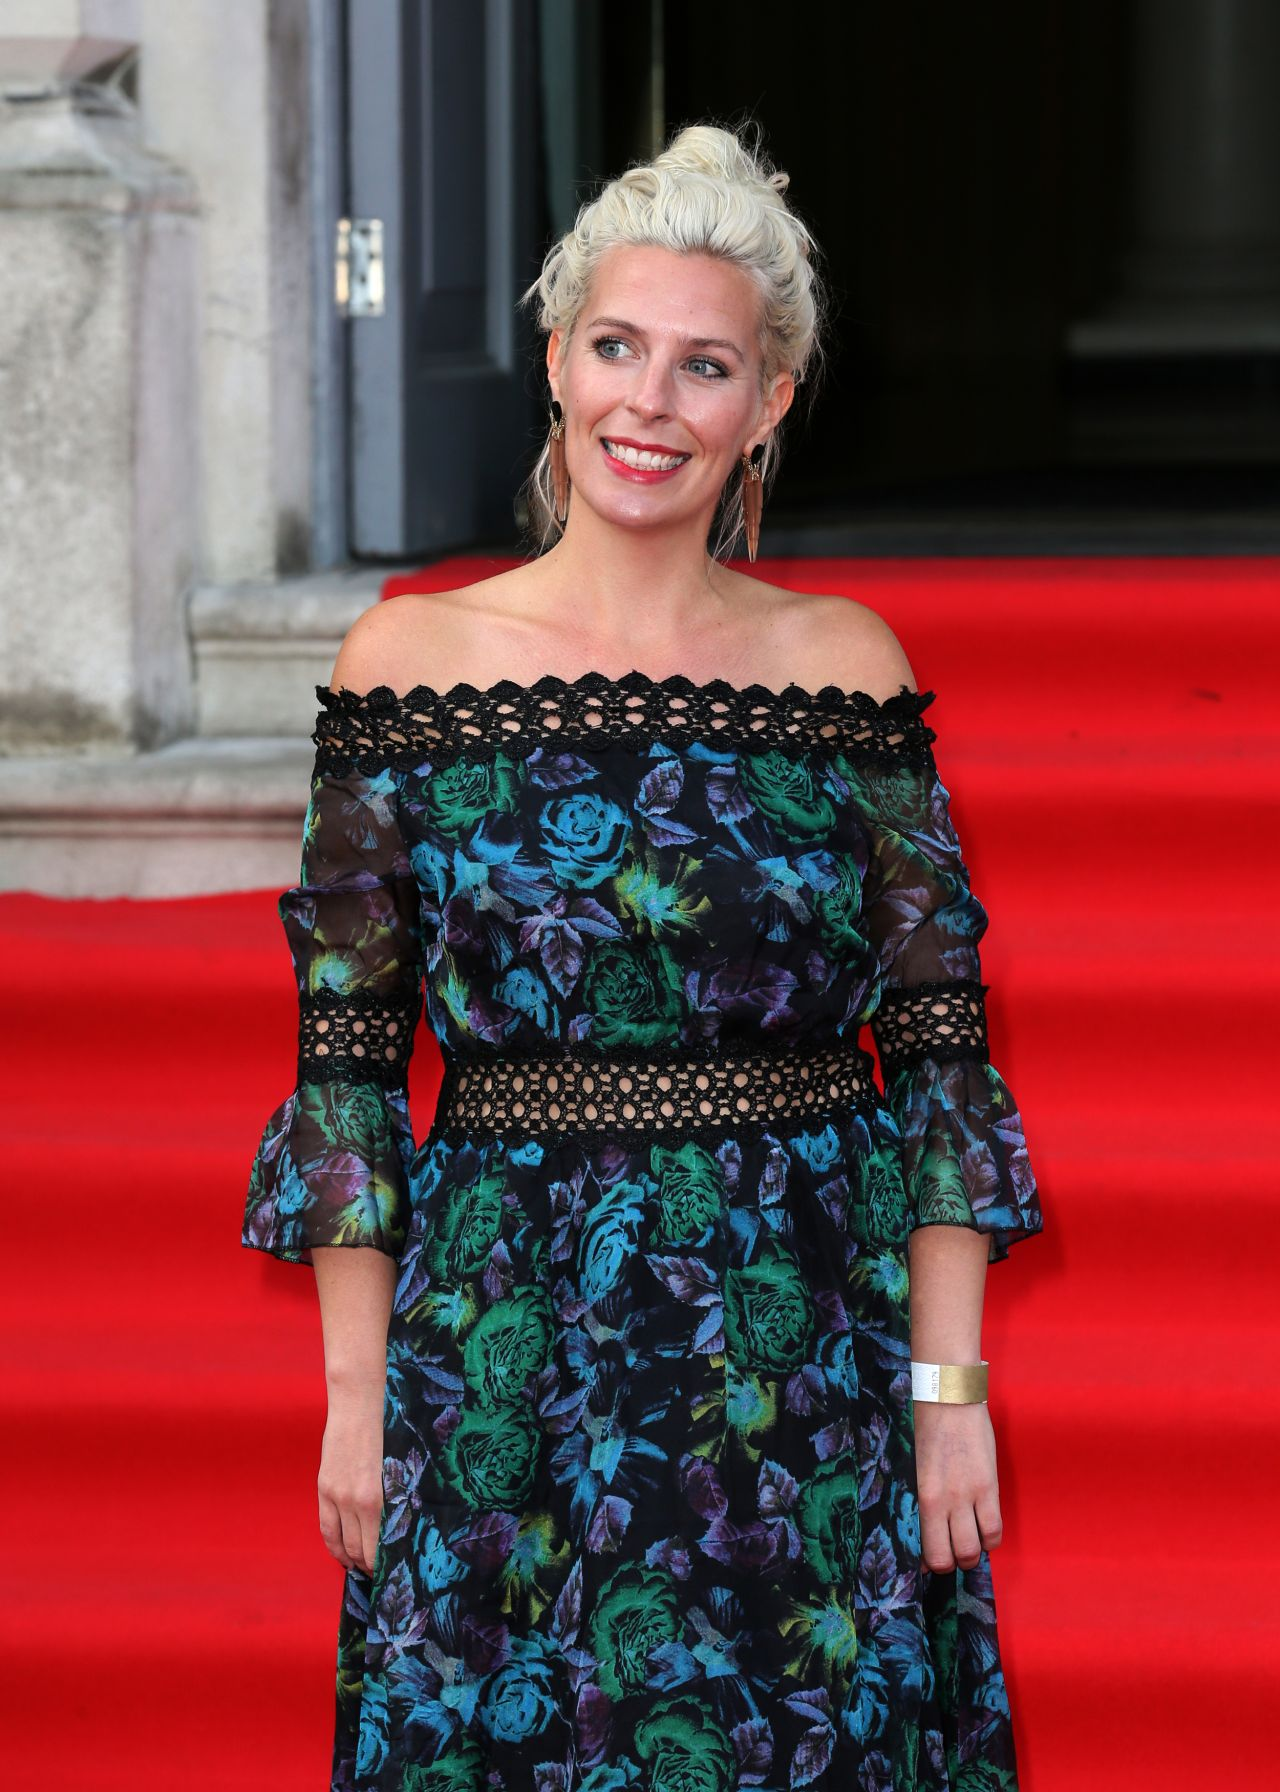 Sara Pascoe The Wife Film4 Summer Screen Film Premiere